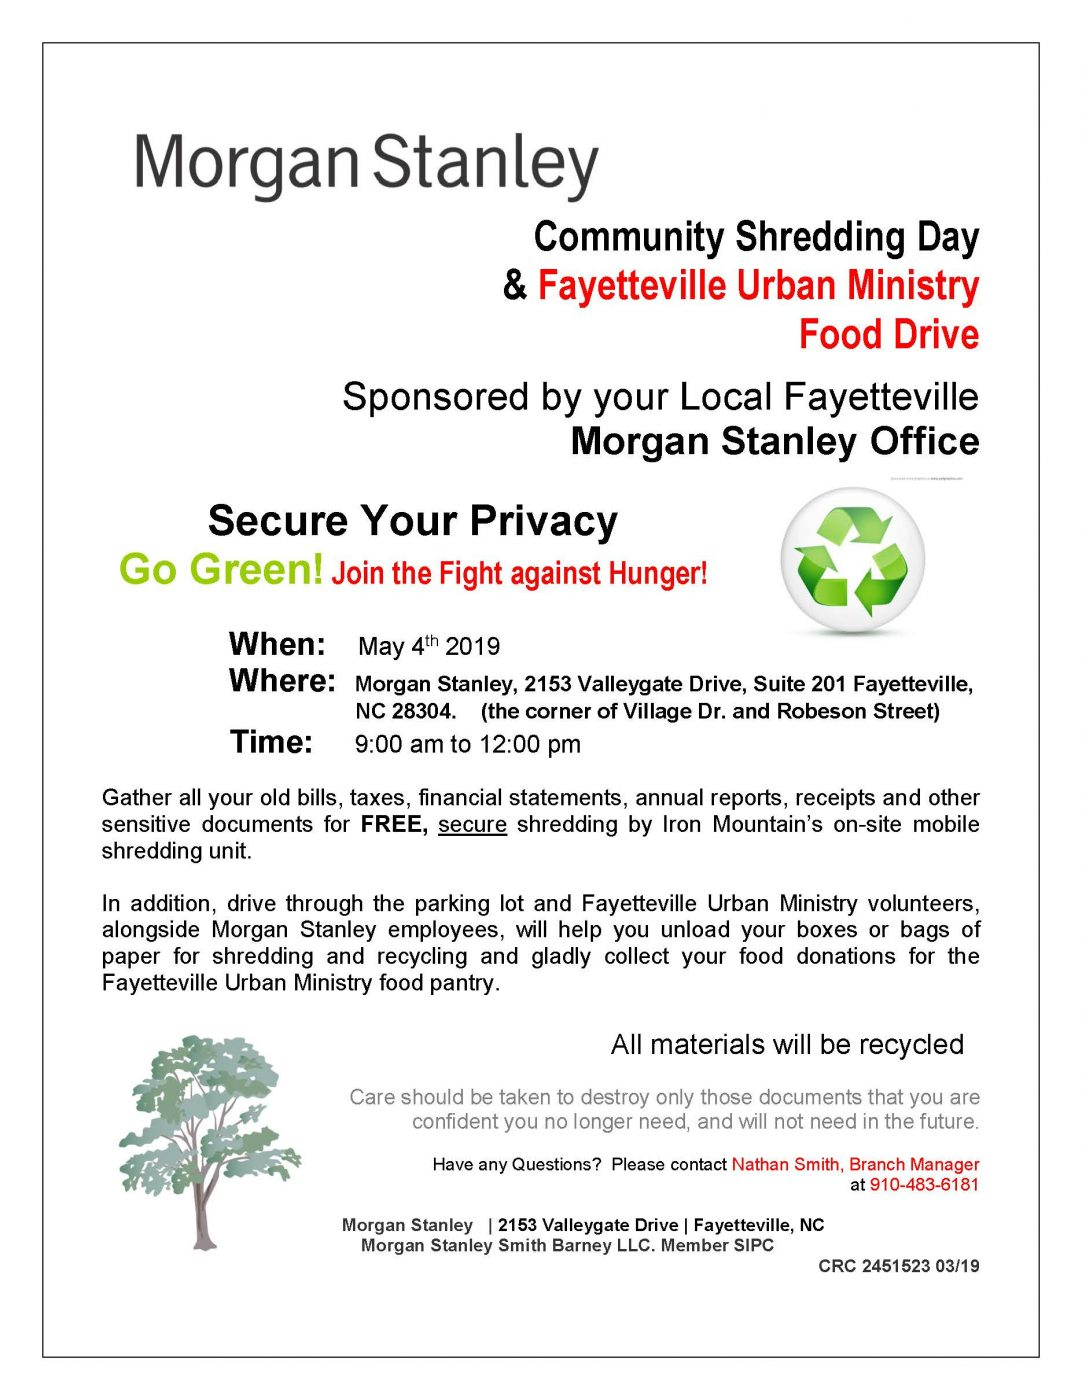 Morgan Stanley Community Shredding Day & Fayetteville Urban Ministry